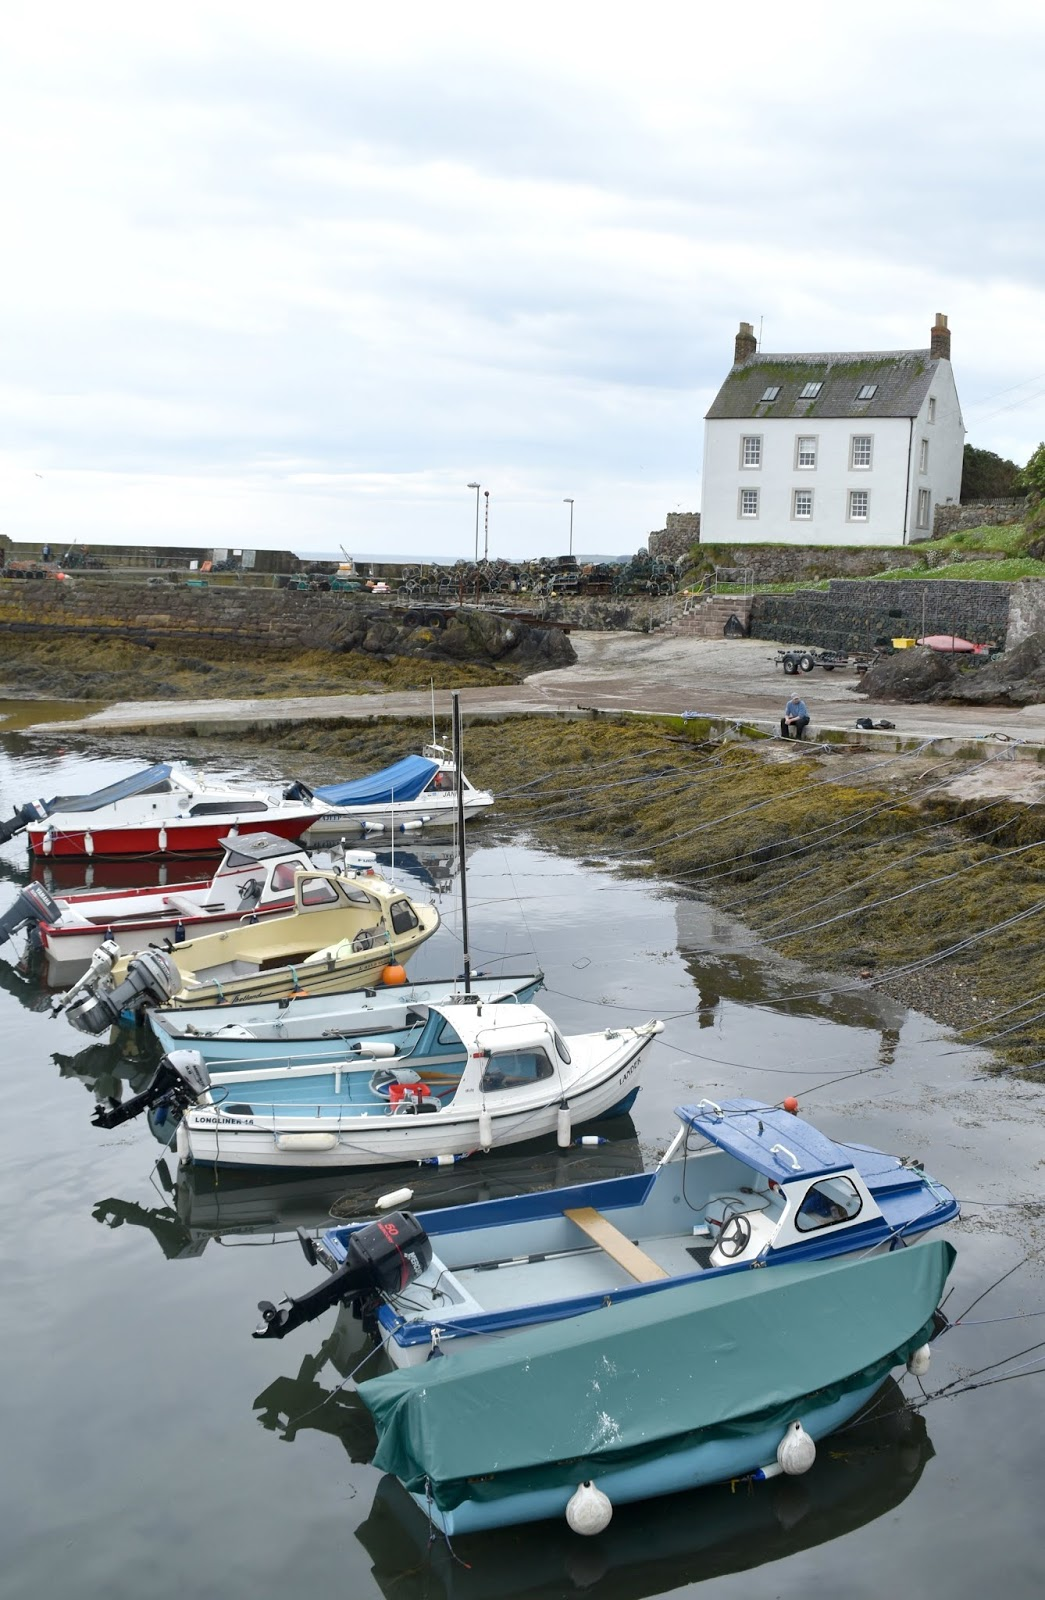 Avengers Filming in Scotland - Exploring St Abbs and New Asgard